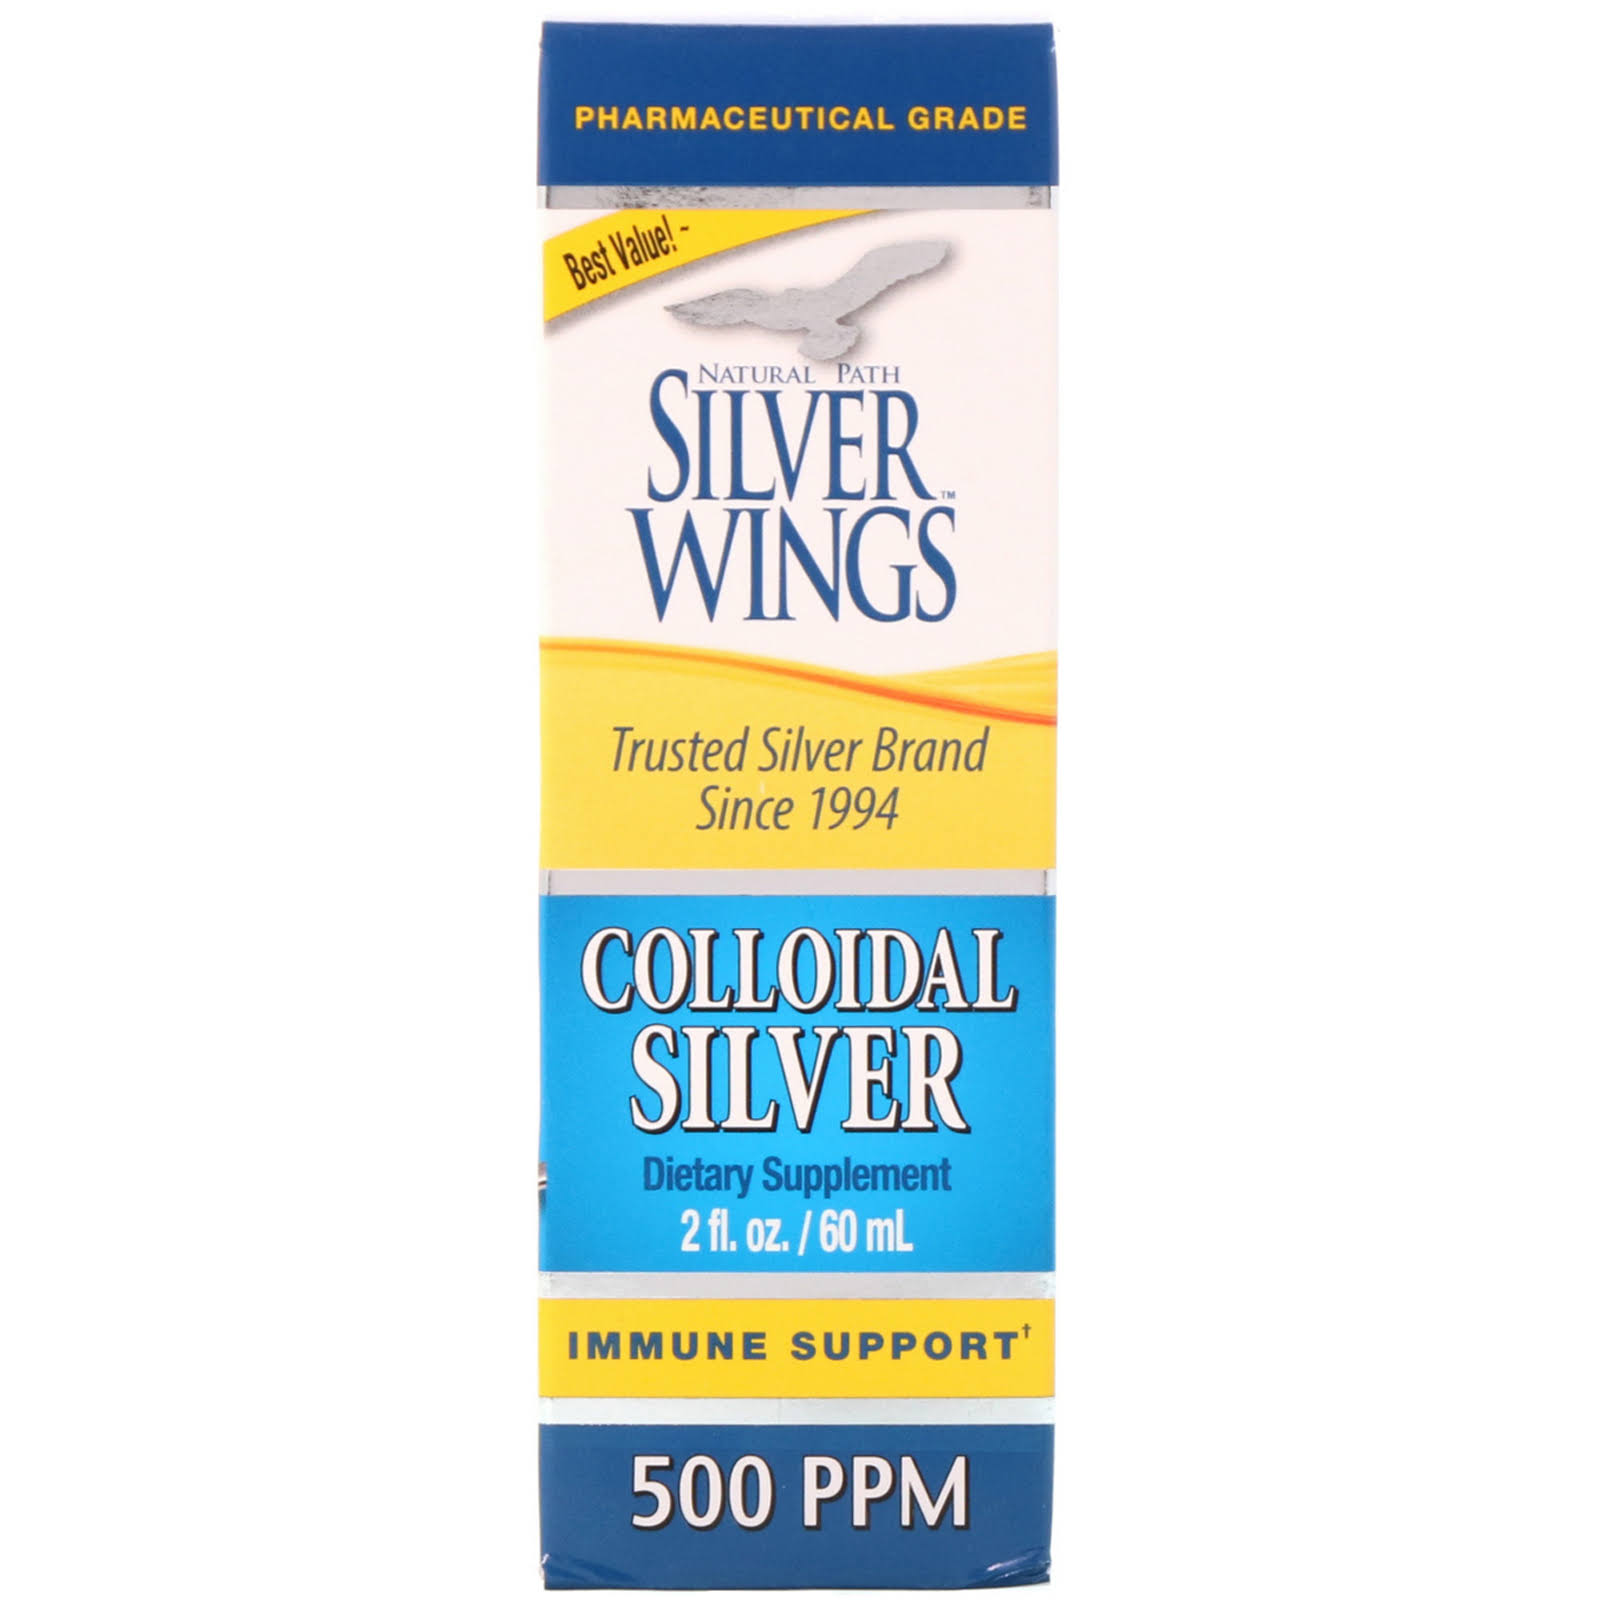 Natural Path Silver Wings Colloidal Silver - 50ml